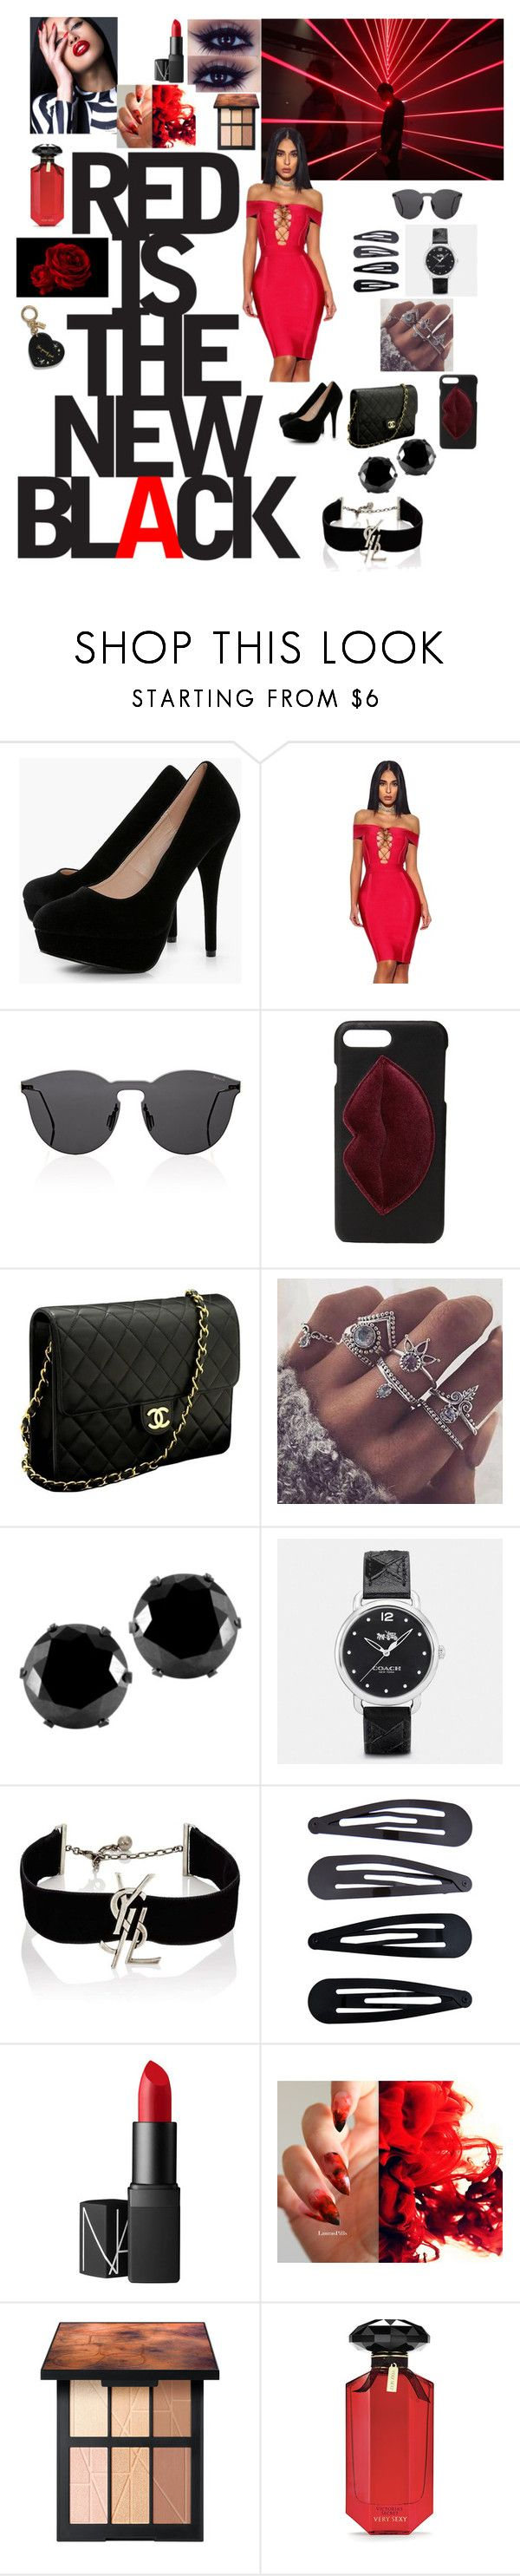 """""""Red is the new black"""" by kookkaty ❤ liked on Polyvore featuring Boohoo, Illesteva, Kendall + Kylie, Chanel, West Coast Jewelry, Coach, Yves Saint Laurent, De Lacy, Accessorize and NARS Cosmetics"""